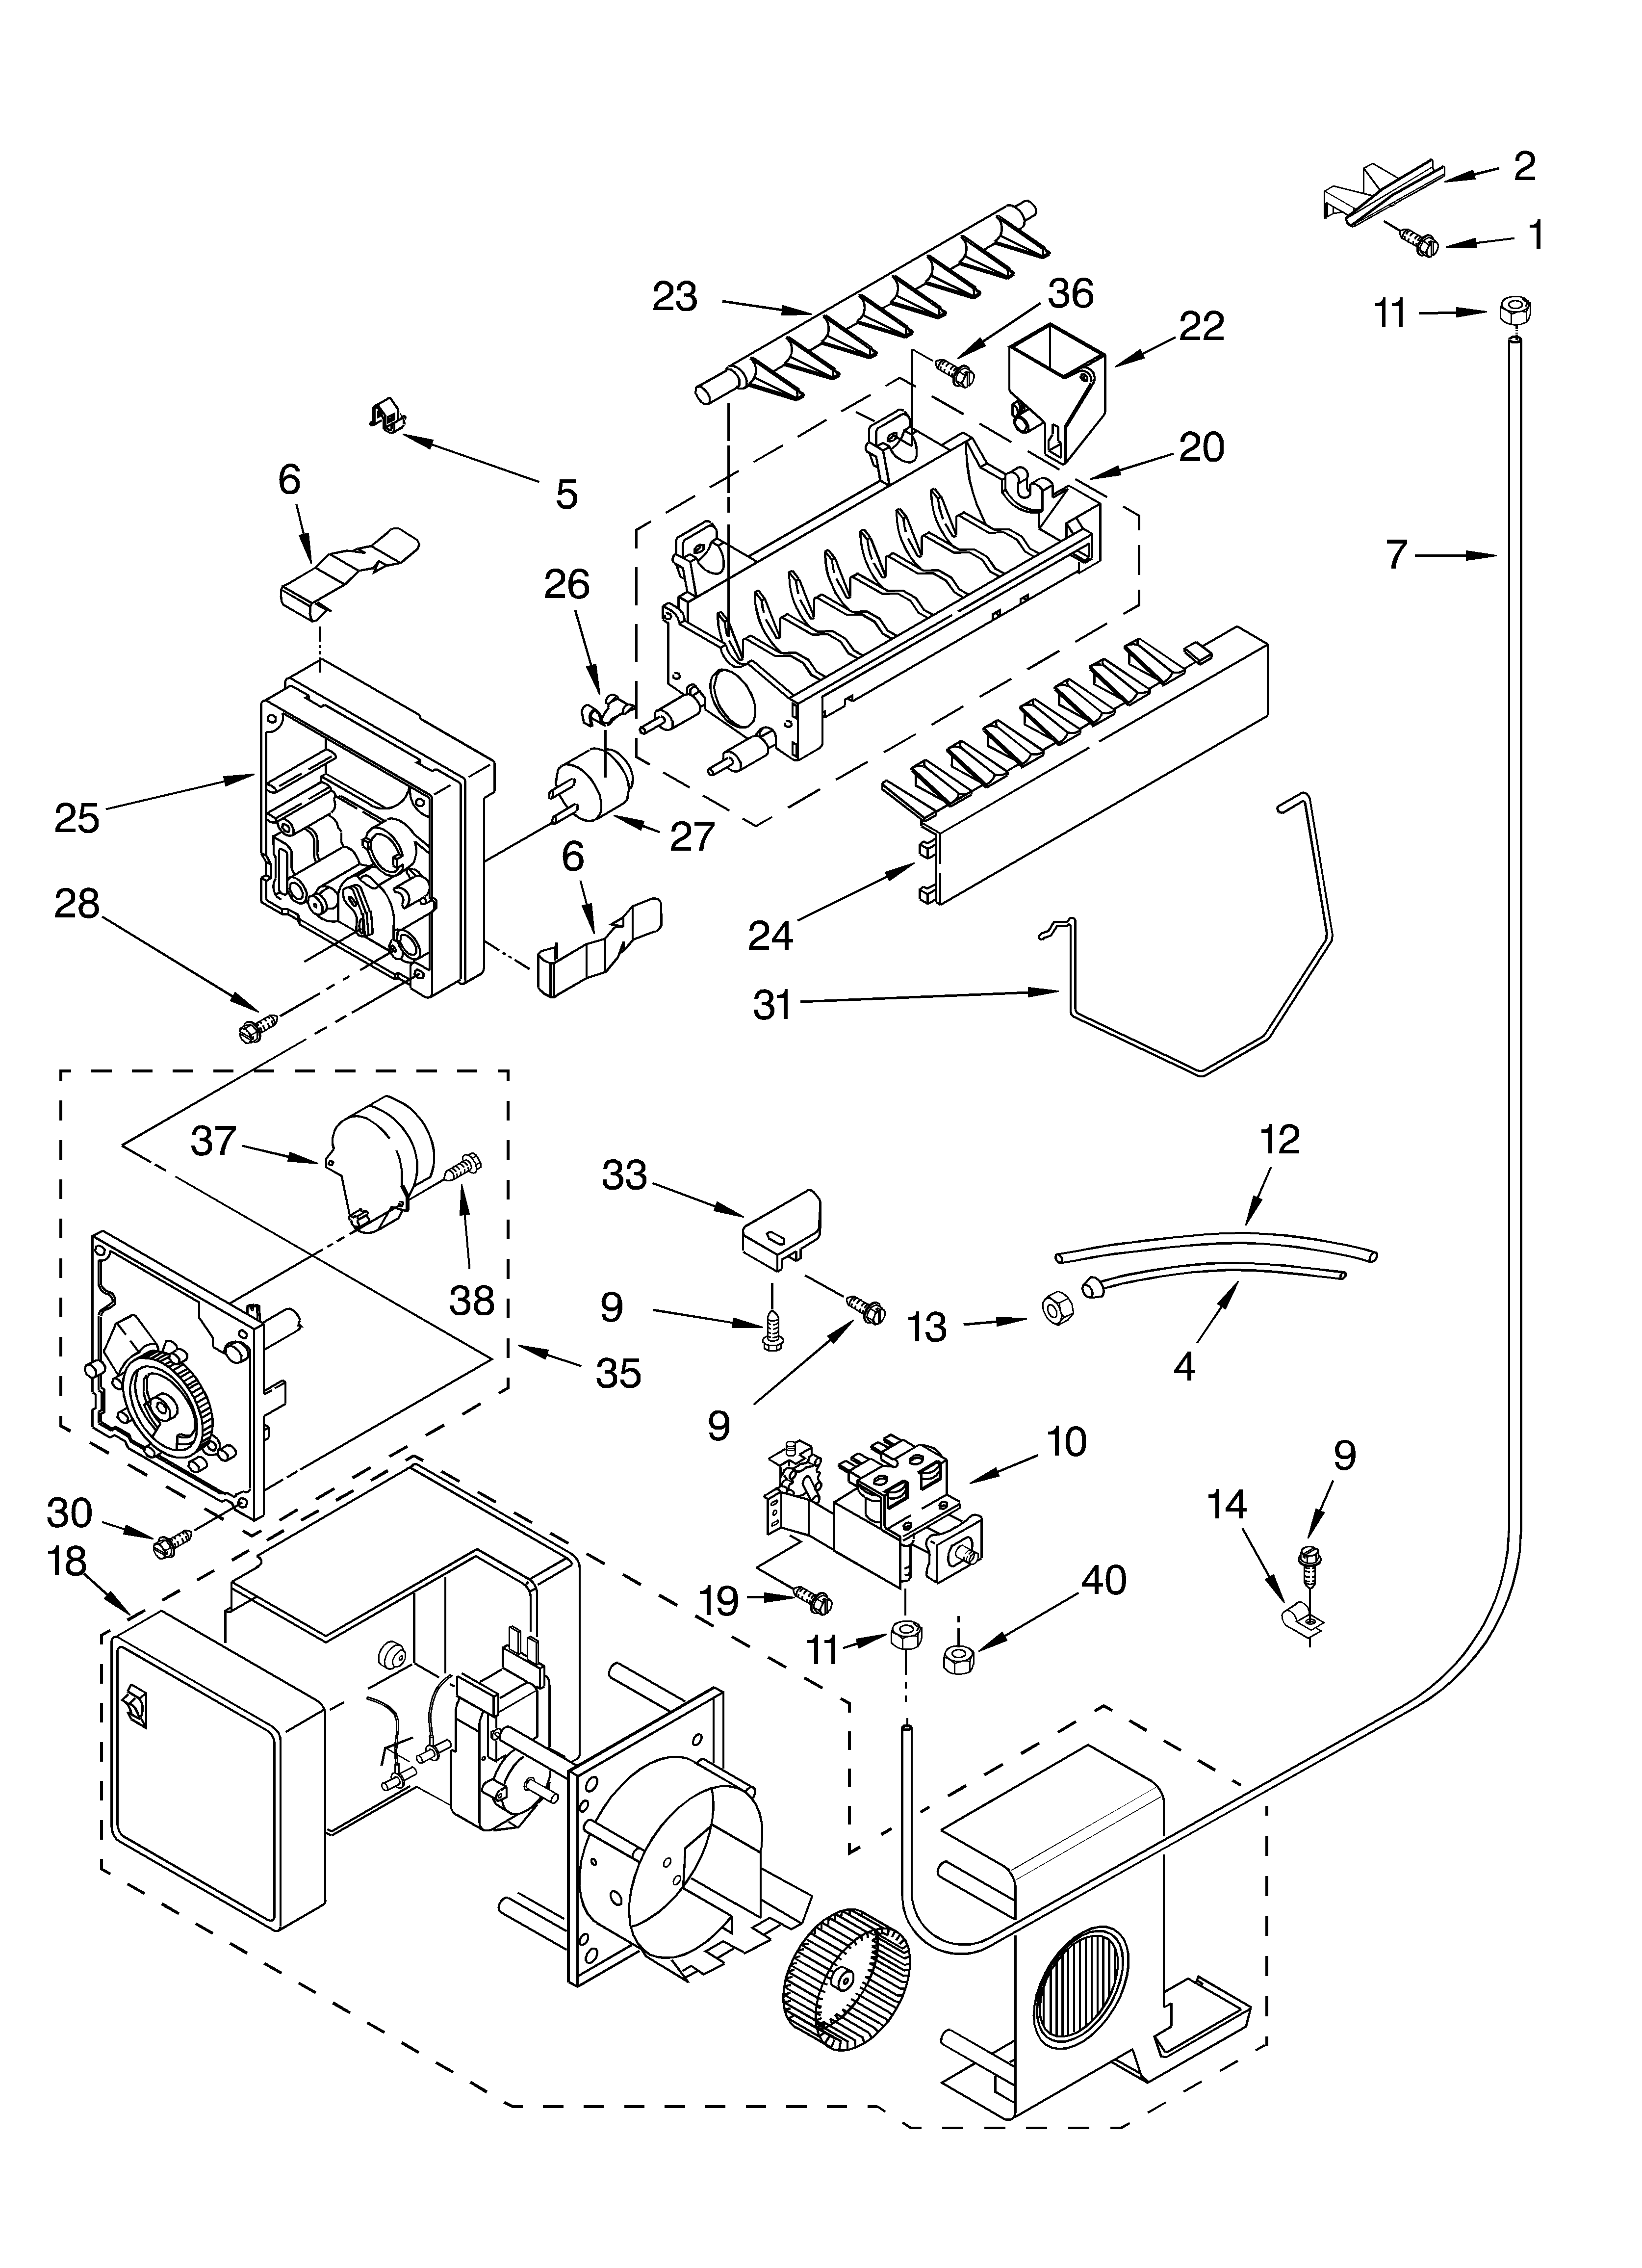 Whirlpool GD5NHGXLQ01 ice maker/optional diagram